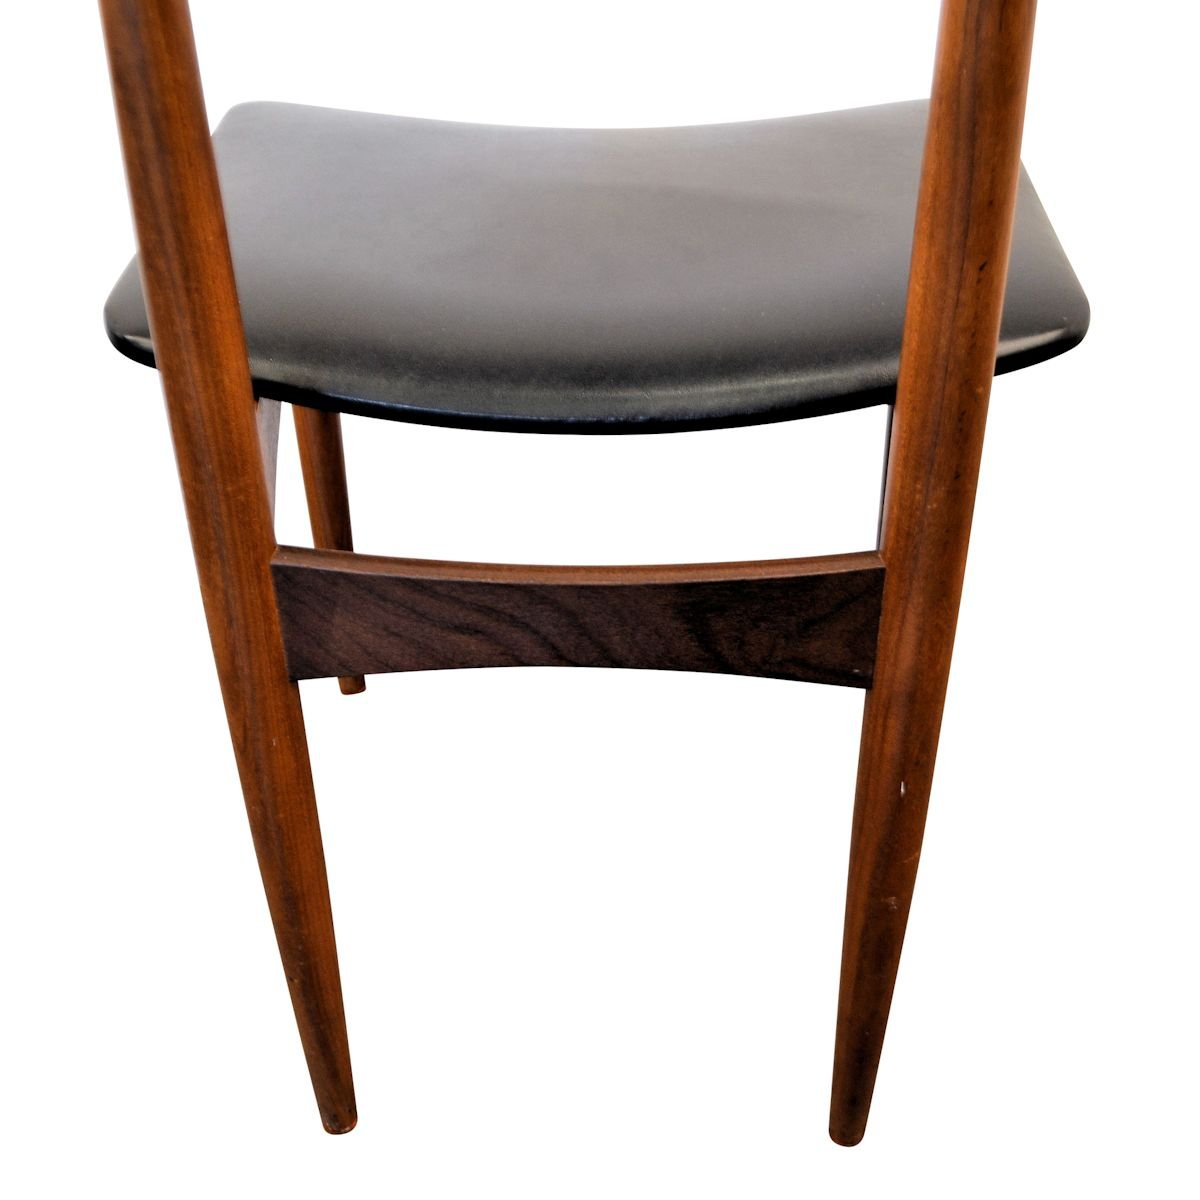 Danish Teak Dining Chairs Vintage Danish Teak Dining Chairs Set Of 6 For Sale At Pamono